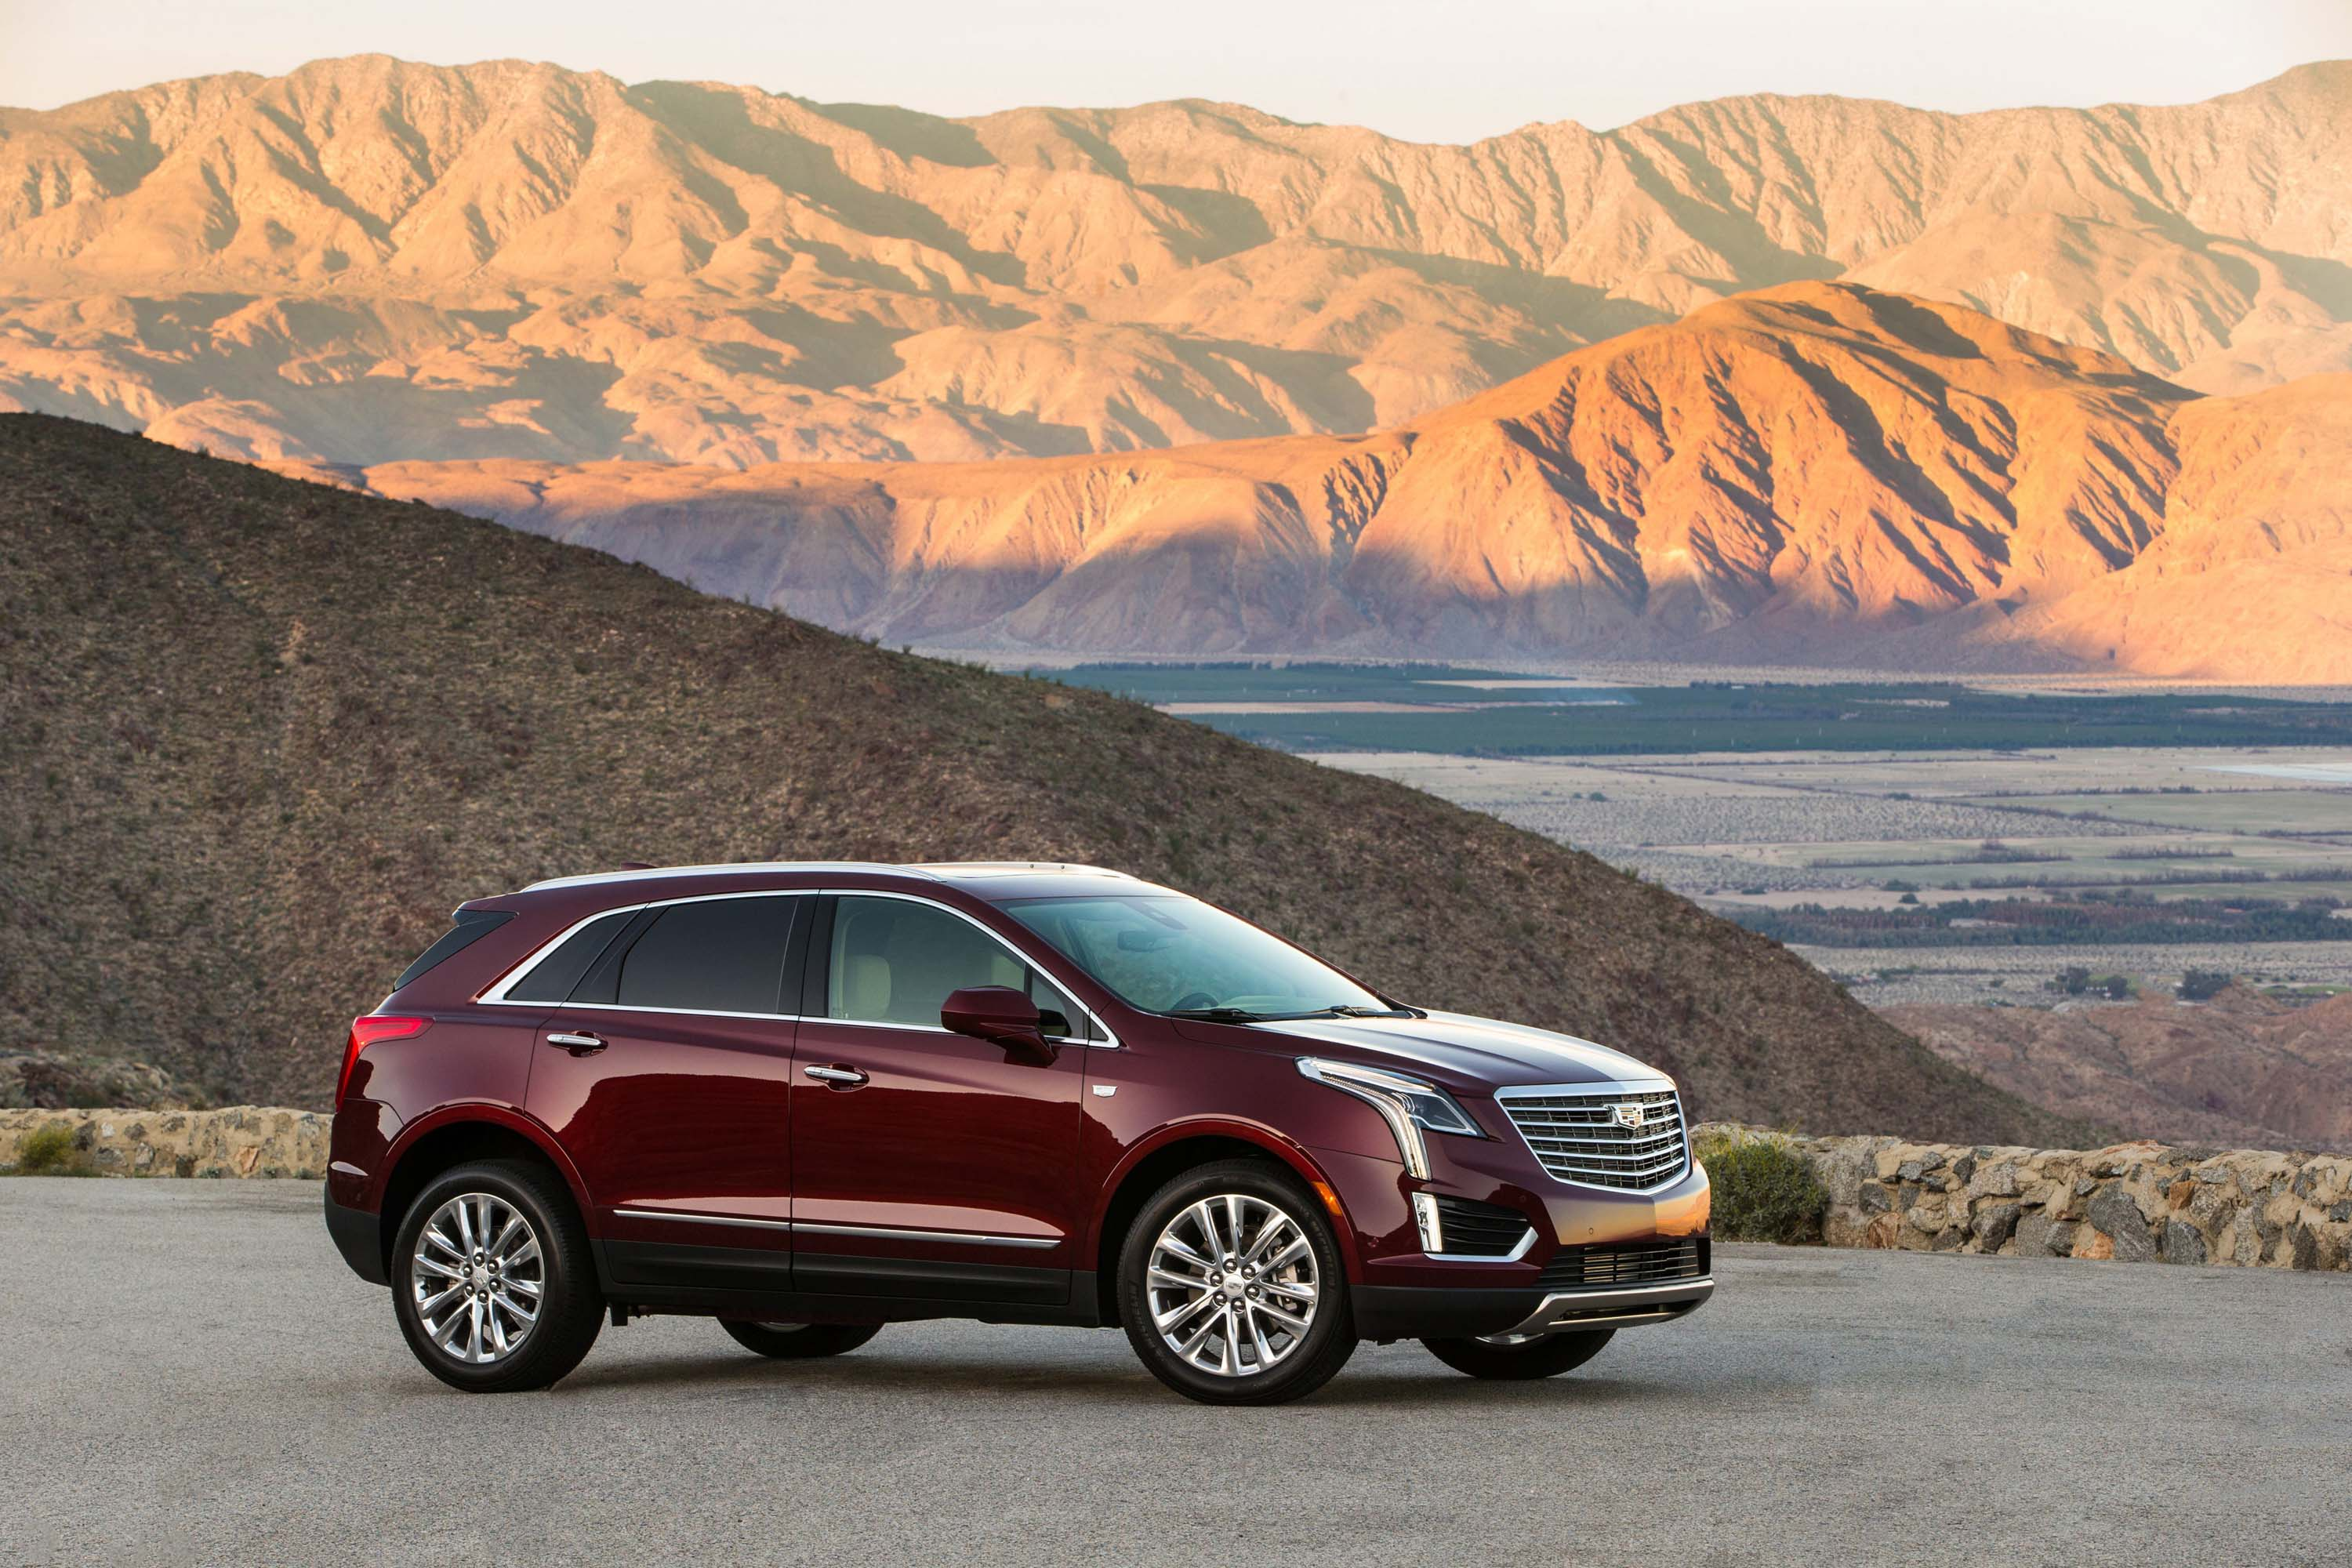 2020 Cadillac Xt5 Review Interior Price Specs >> 2019 Cadillac Xt5 Review Ratings Specs Prices And Photos